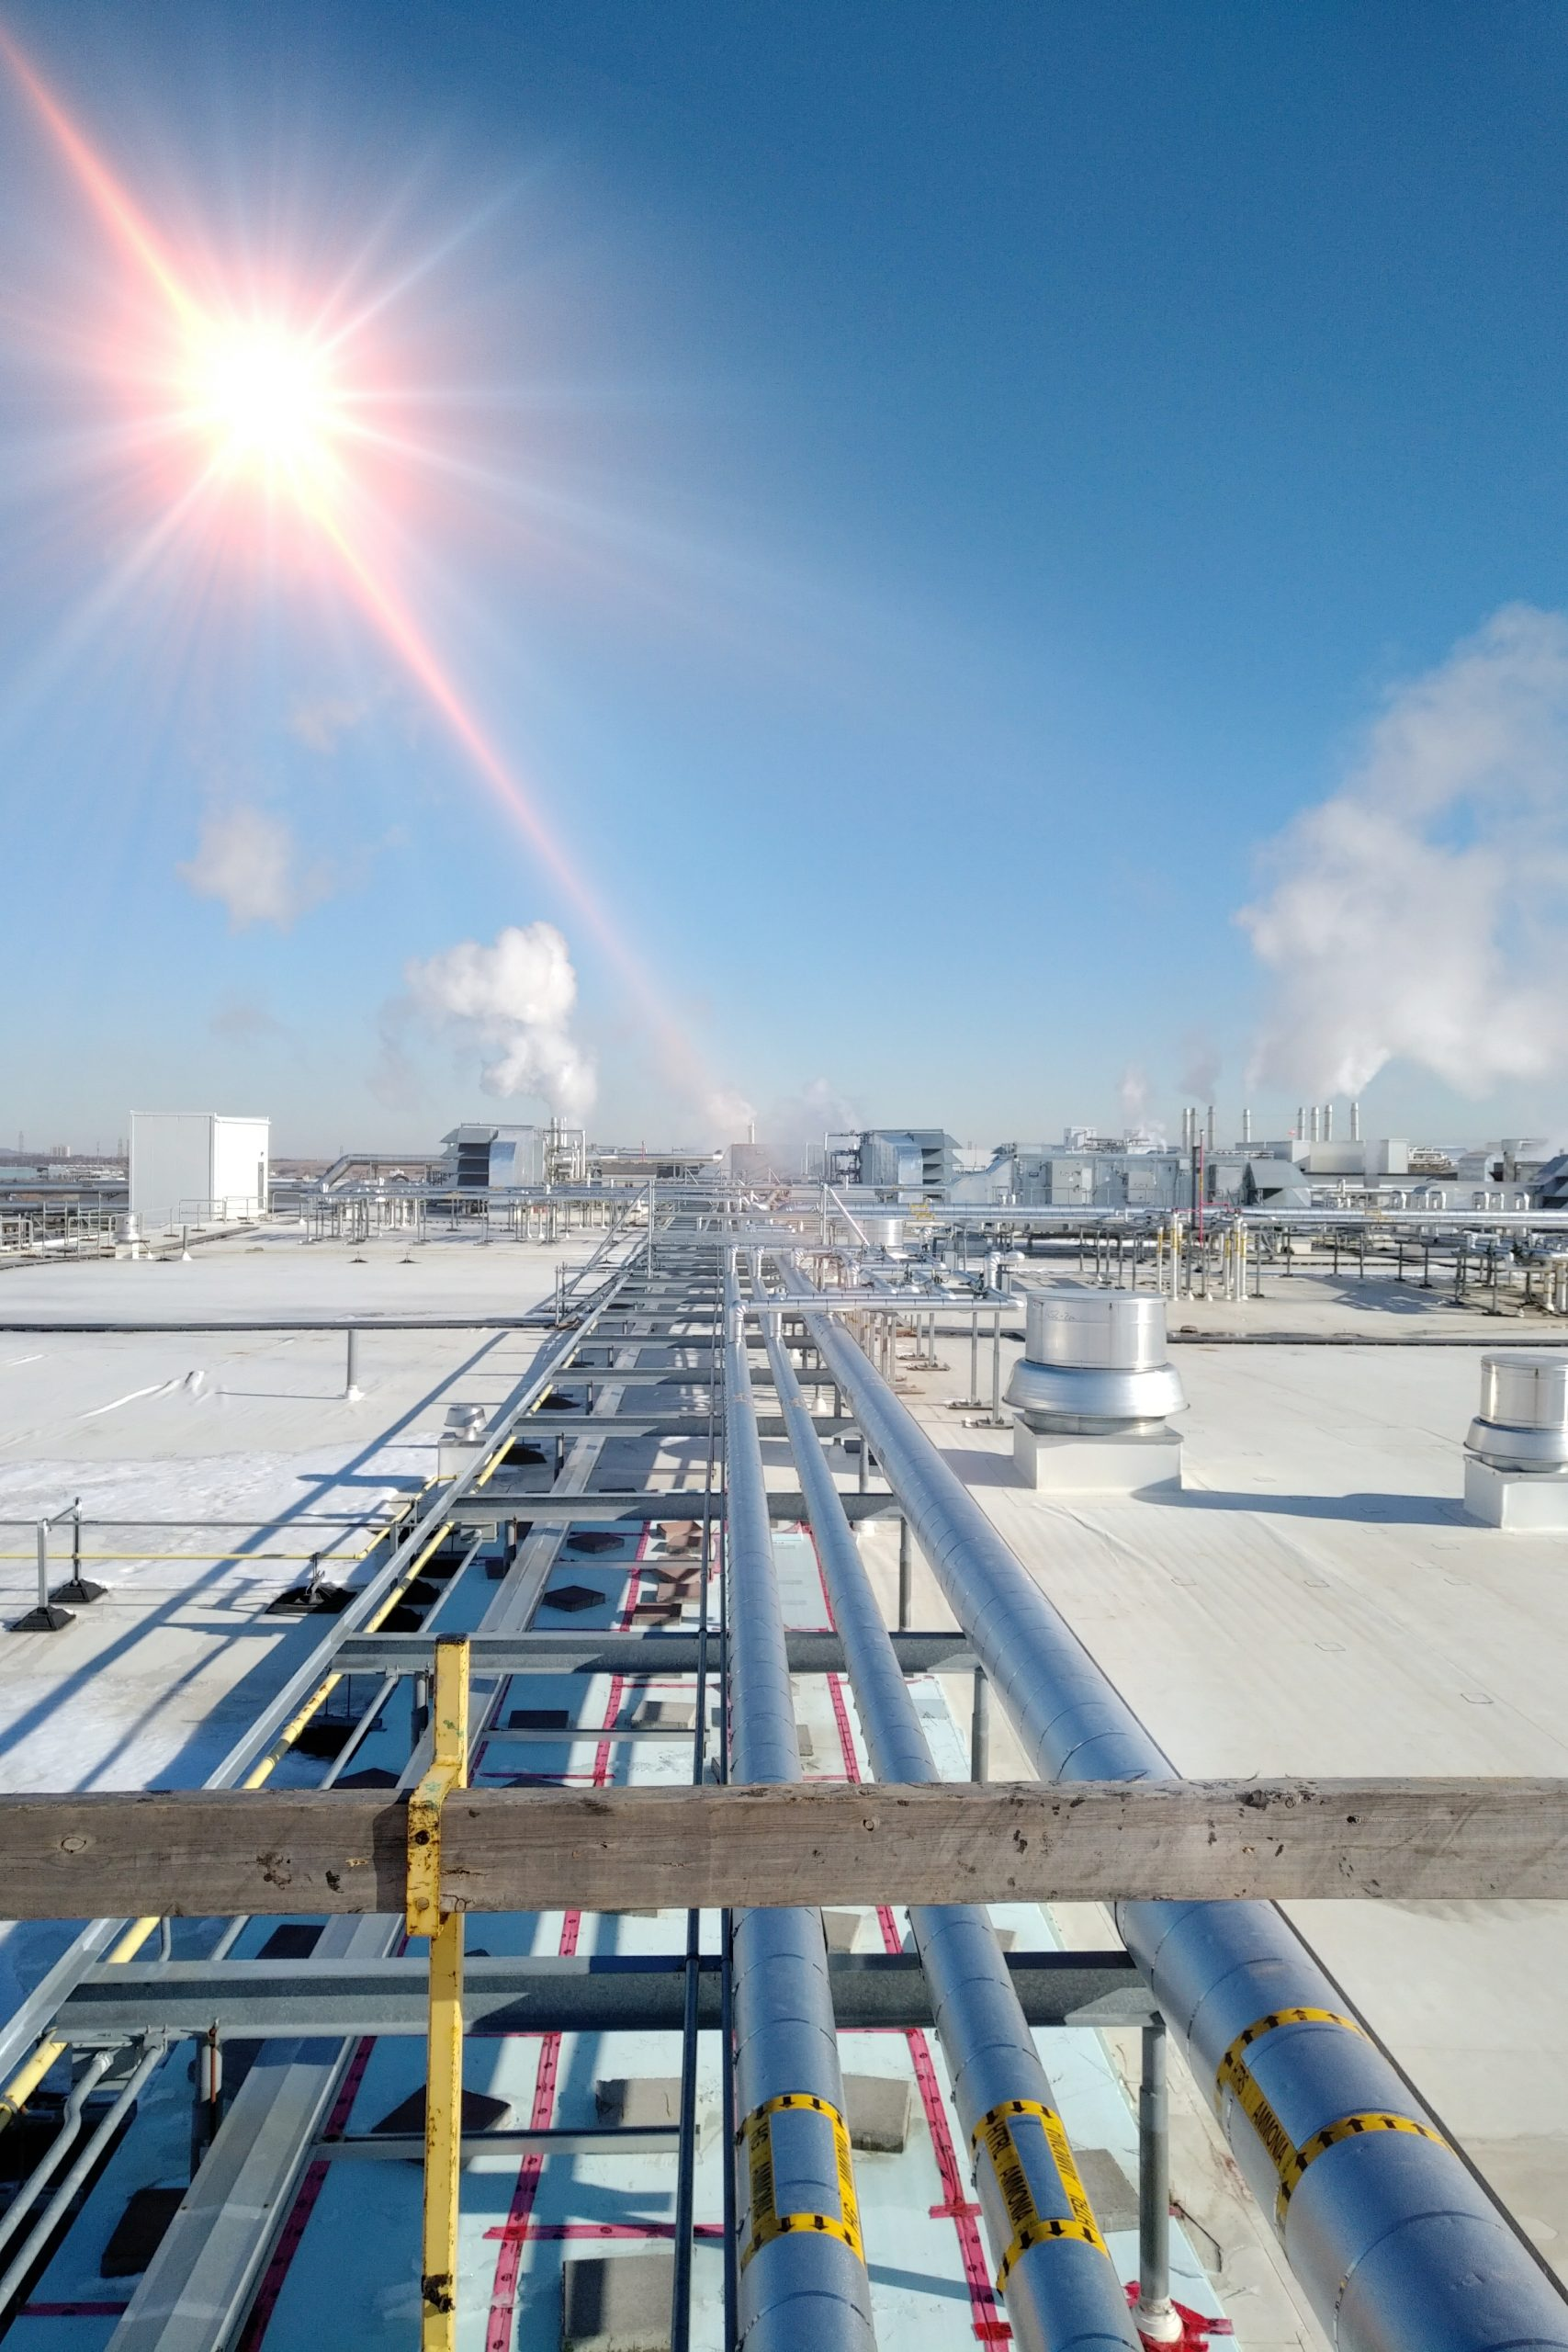 Ammonia piping spans a new membrane roof.Steam can be seen billowing from exhaust stacks. clear blue sky